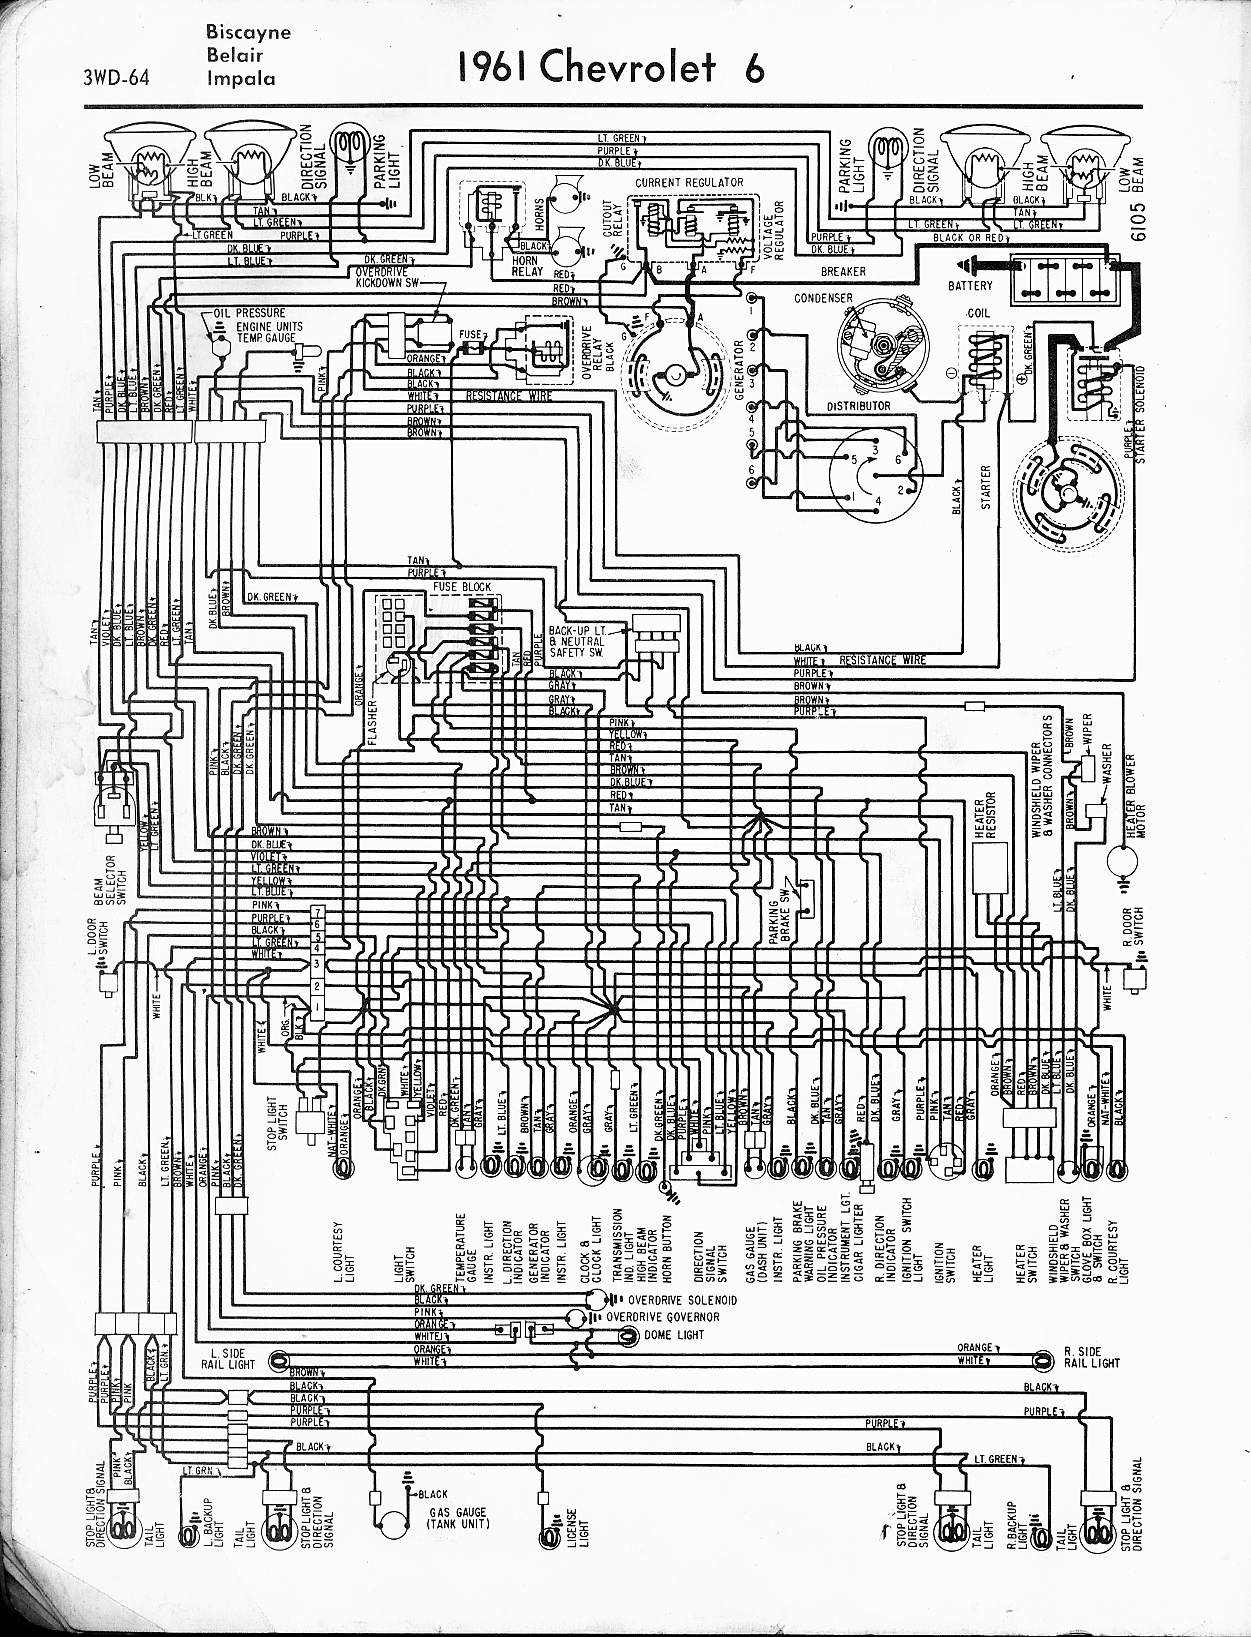 57 Chevy Wiring Harness For Prints Not Lossing Diagram 1957 Truck Painless 65 Diagrams Rh Oldcarmanualproject Com Bel Air